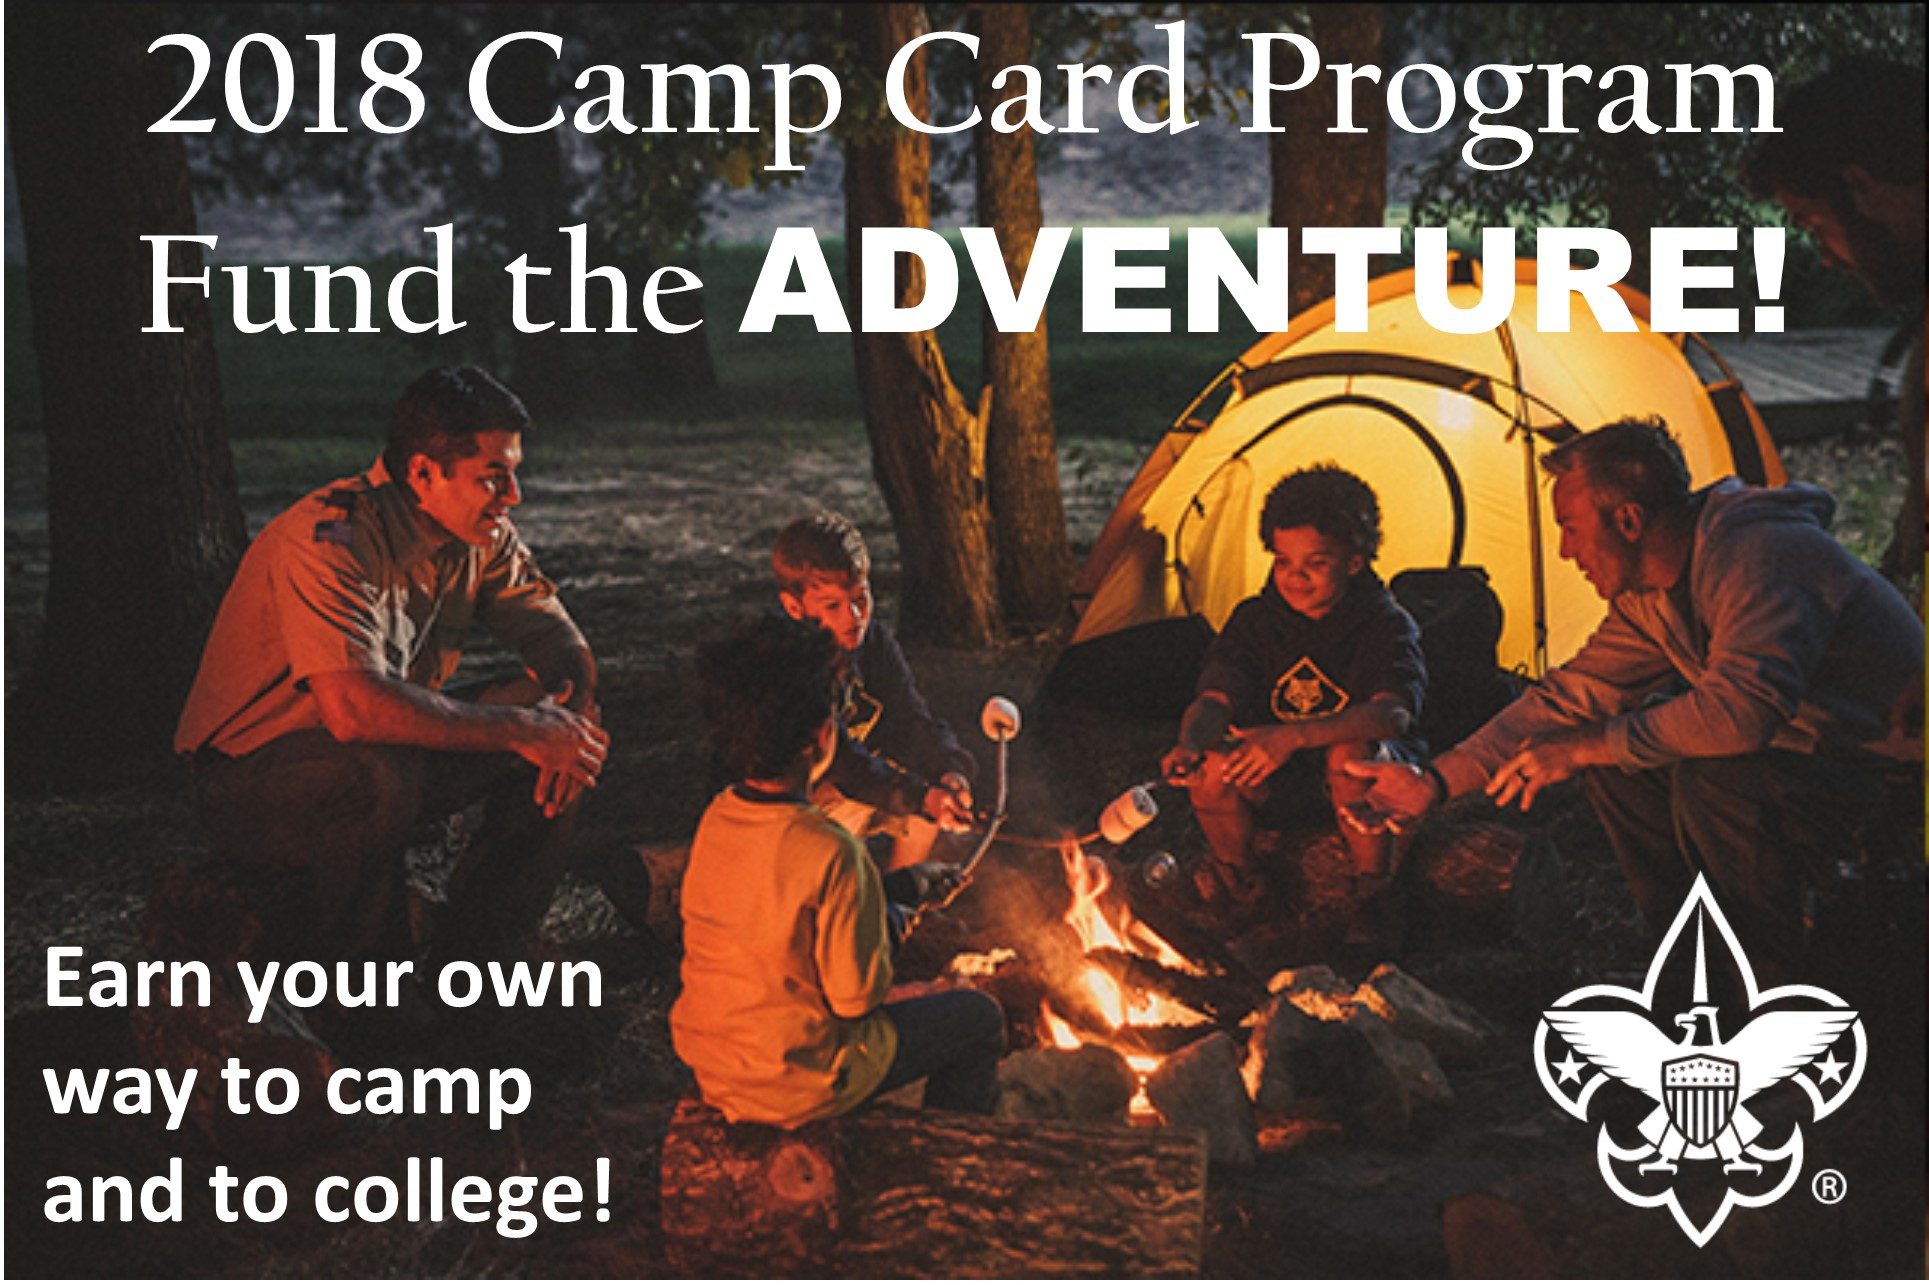 Camp Card pic